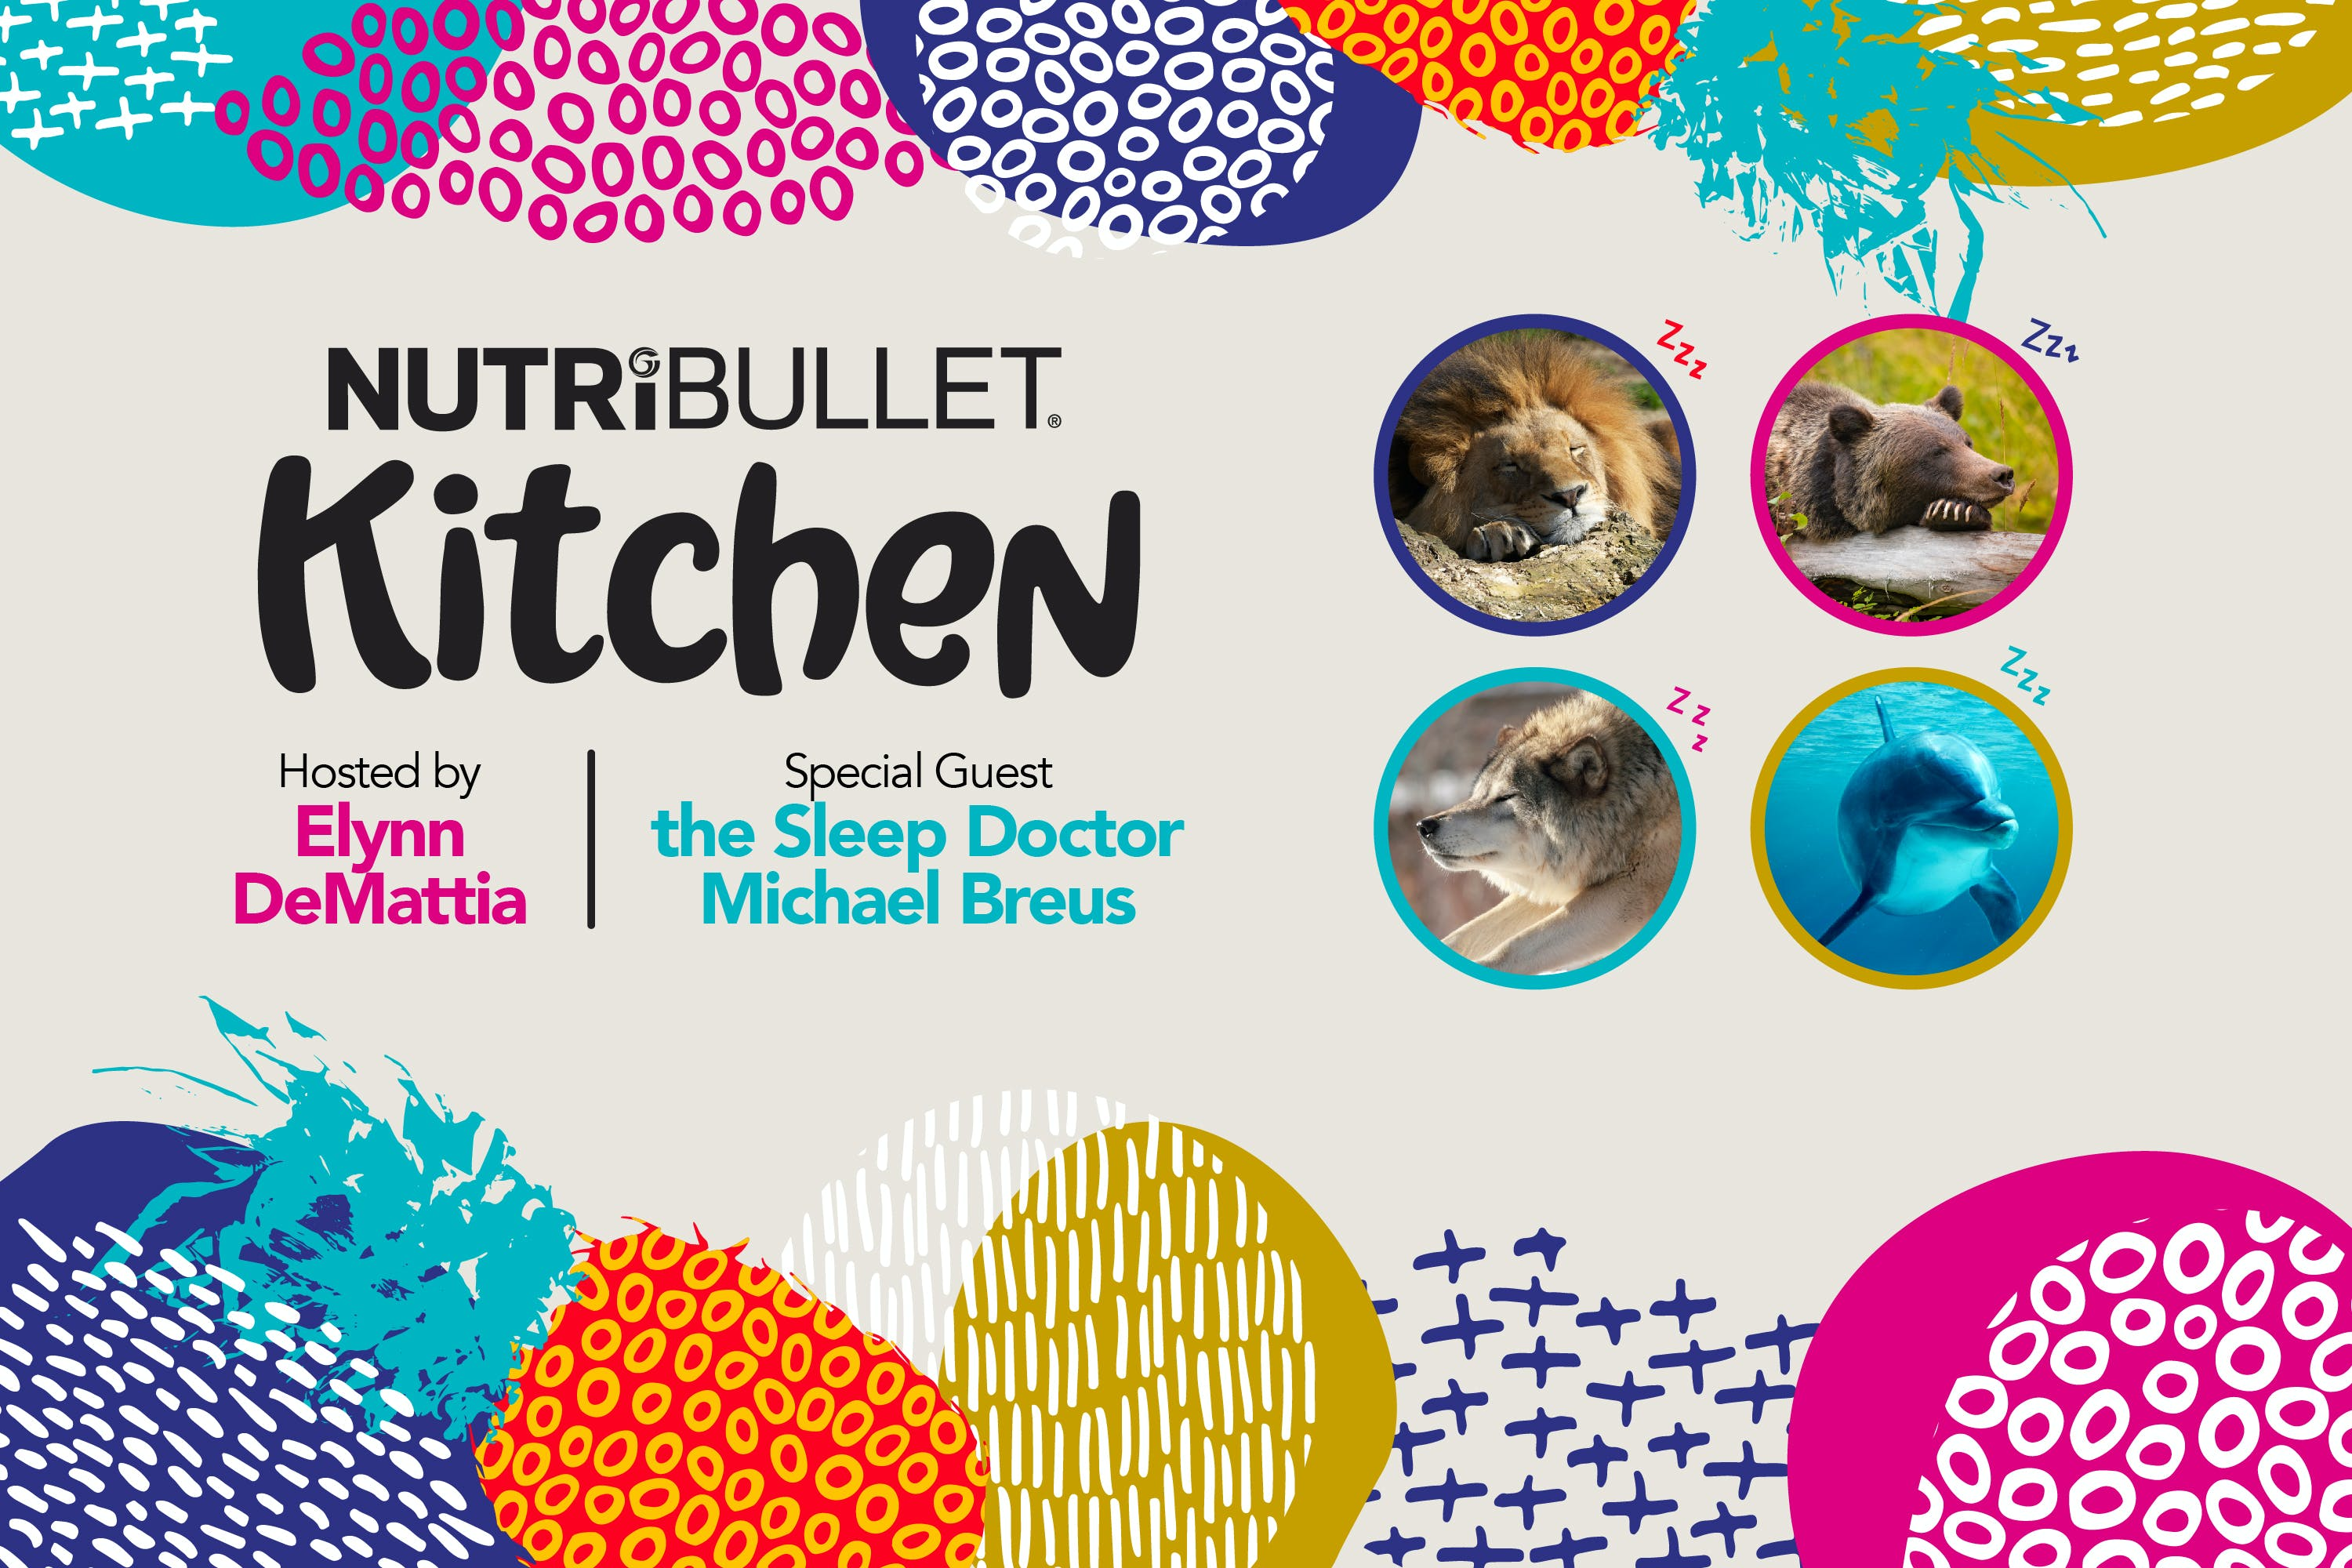 NutriBullet Kitchen Podcast Episode 2 Interview with Dr. Michael Breus